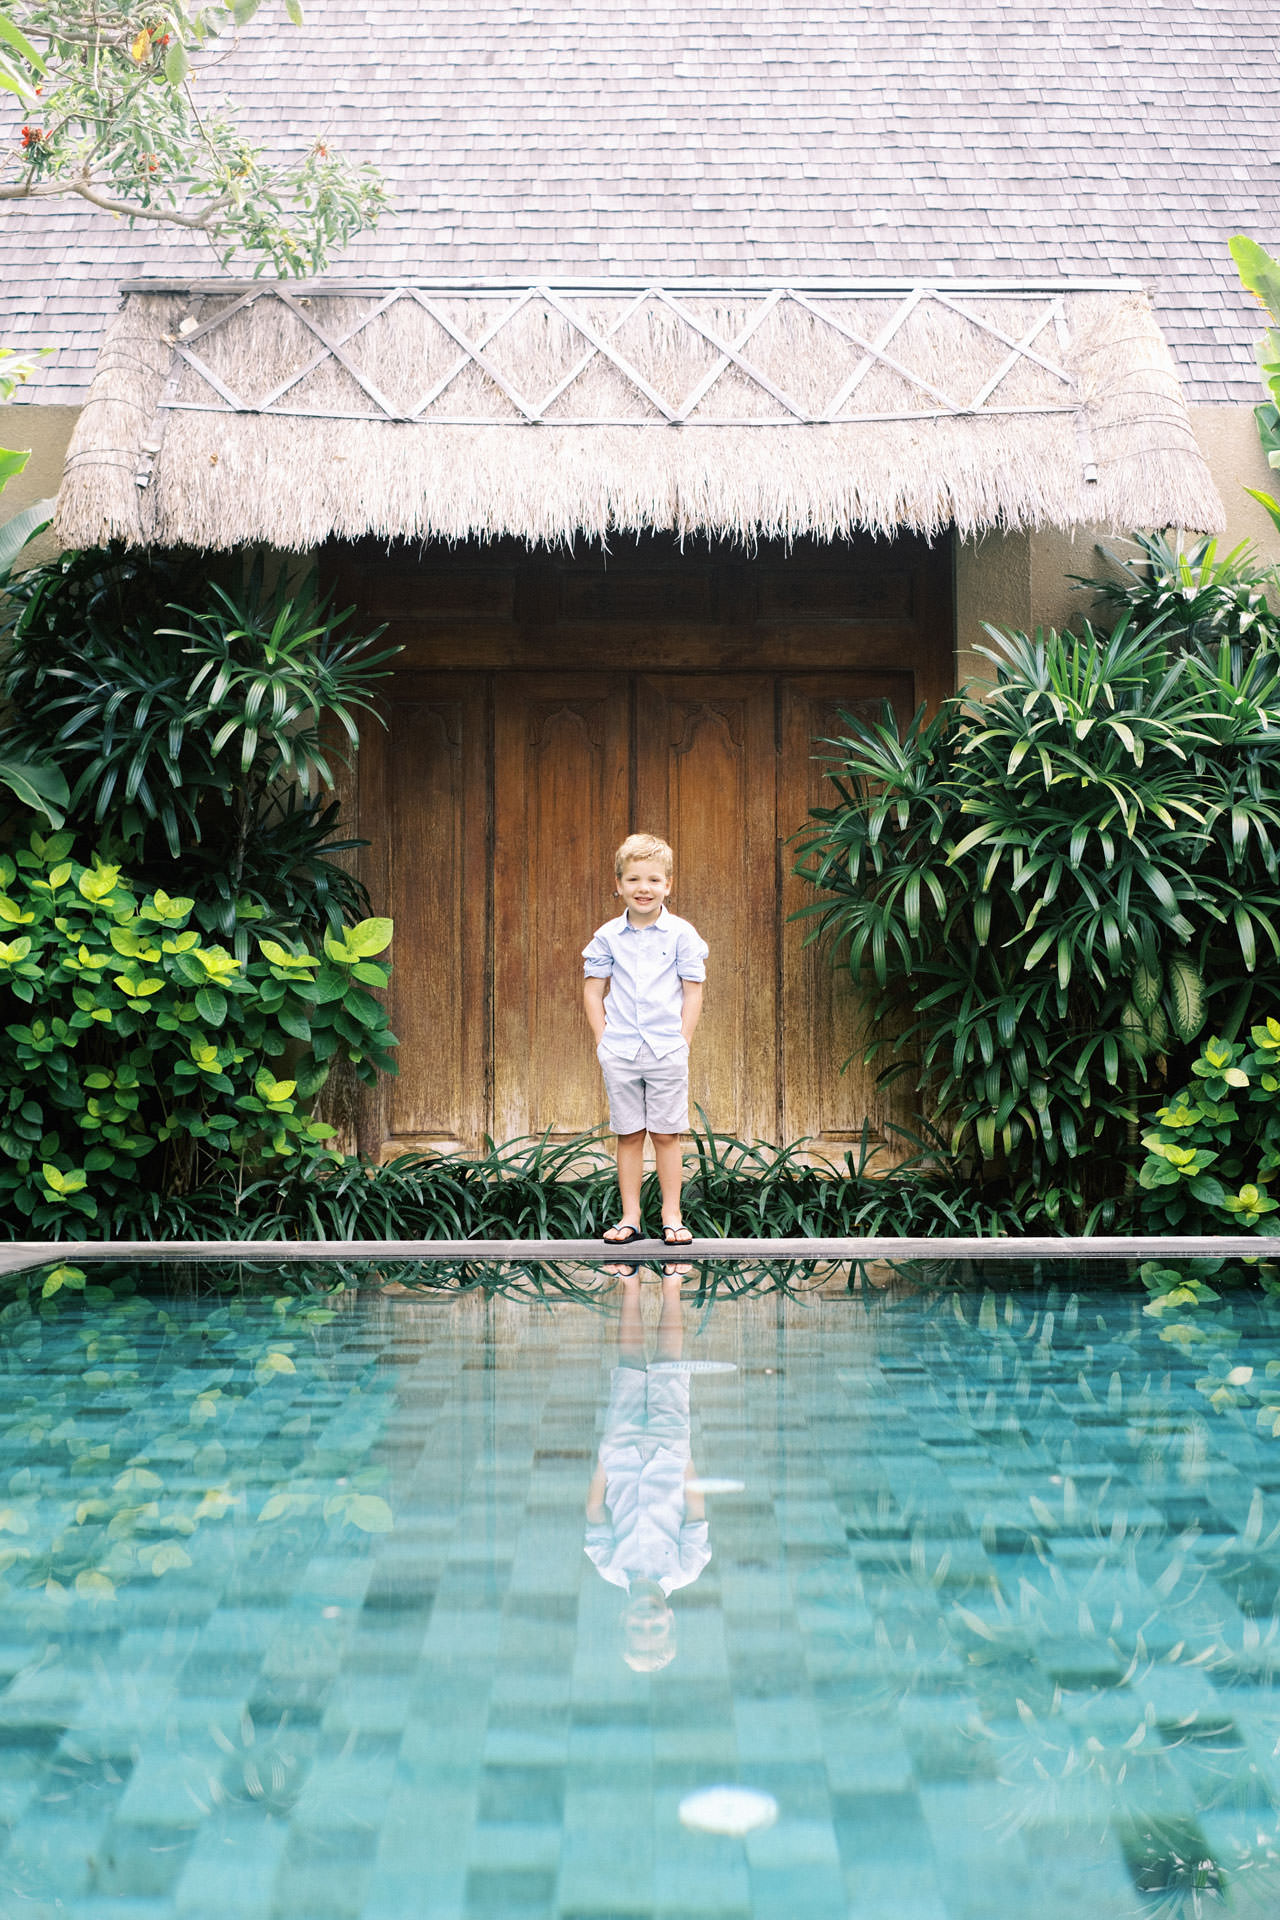 Bali Family Photographer - Fun Family Vacation in Bali 2